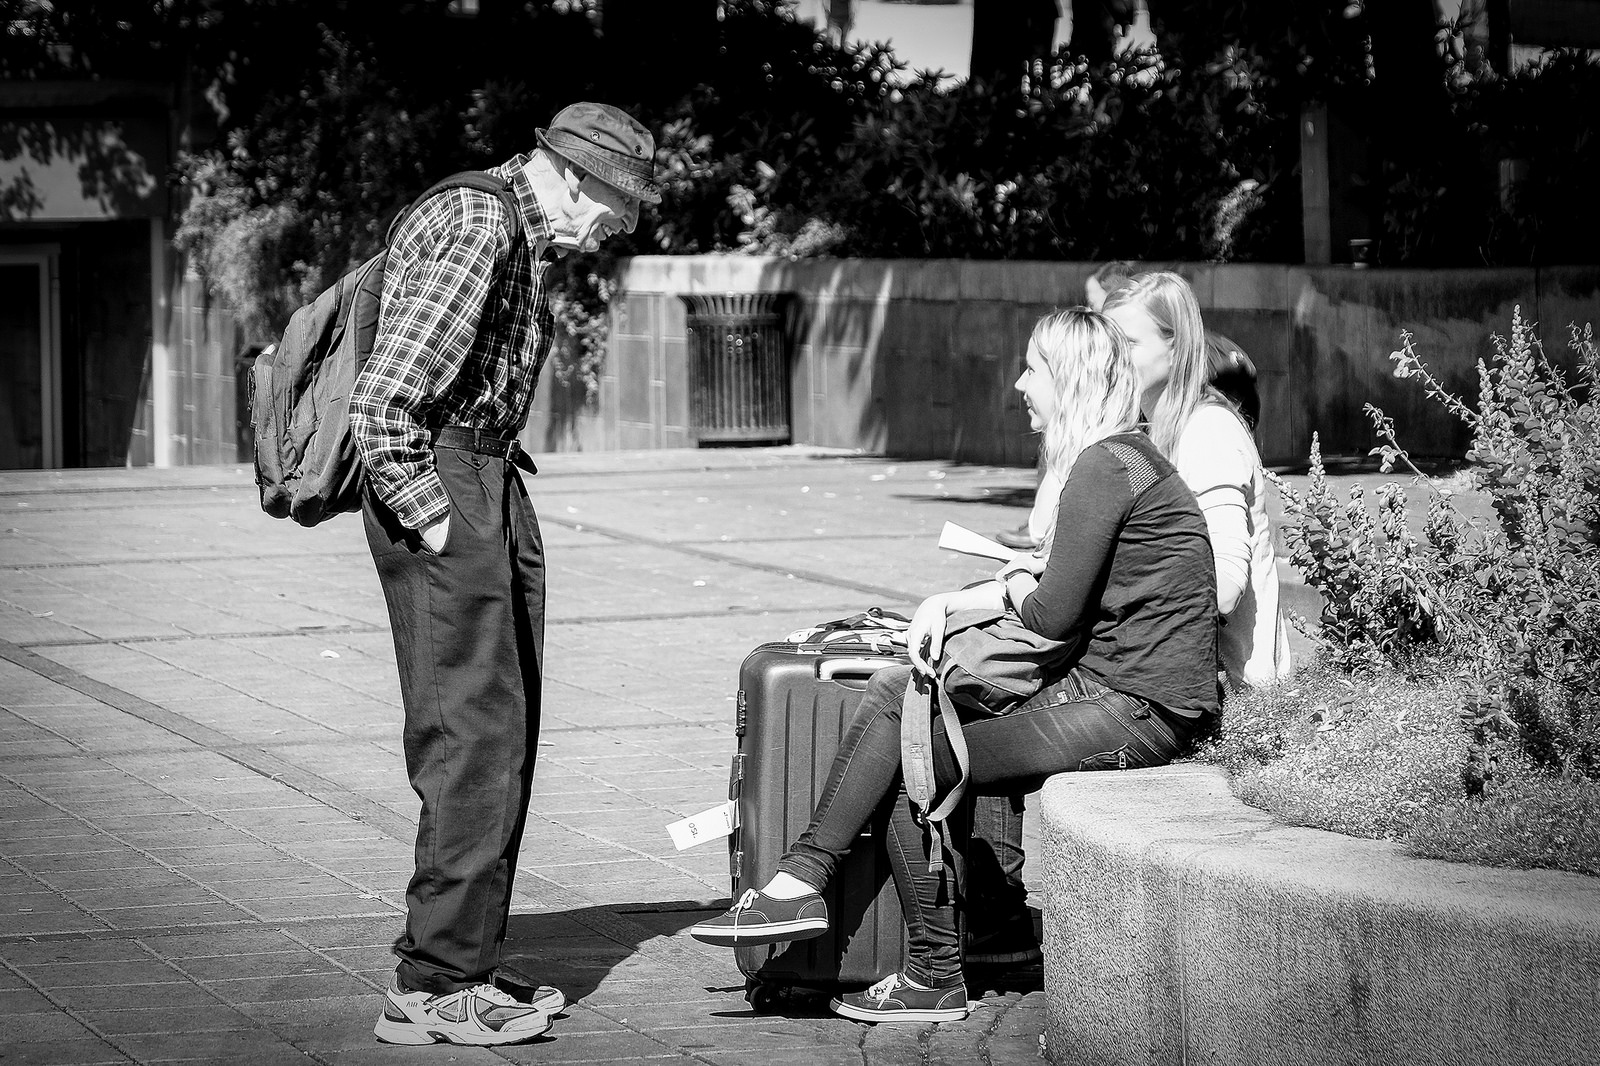 Oslo and Its People in Black and White: Still Beautiful